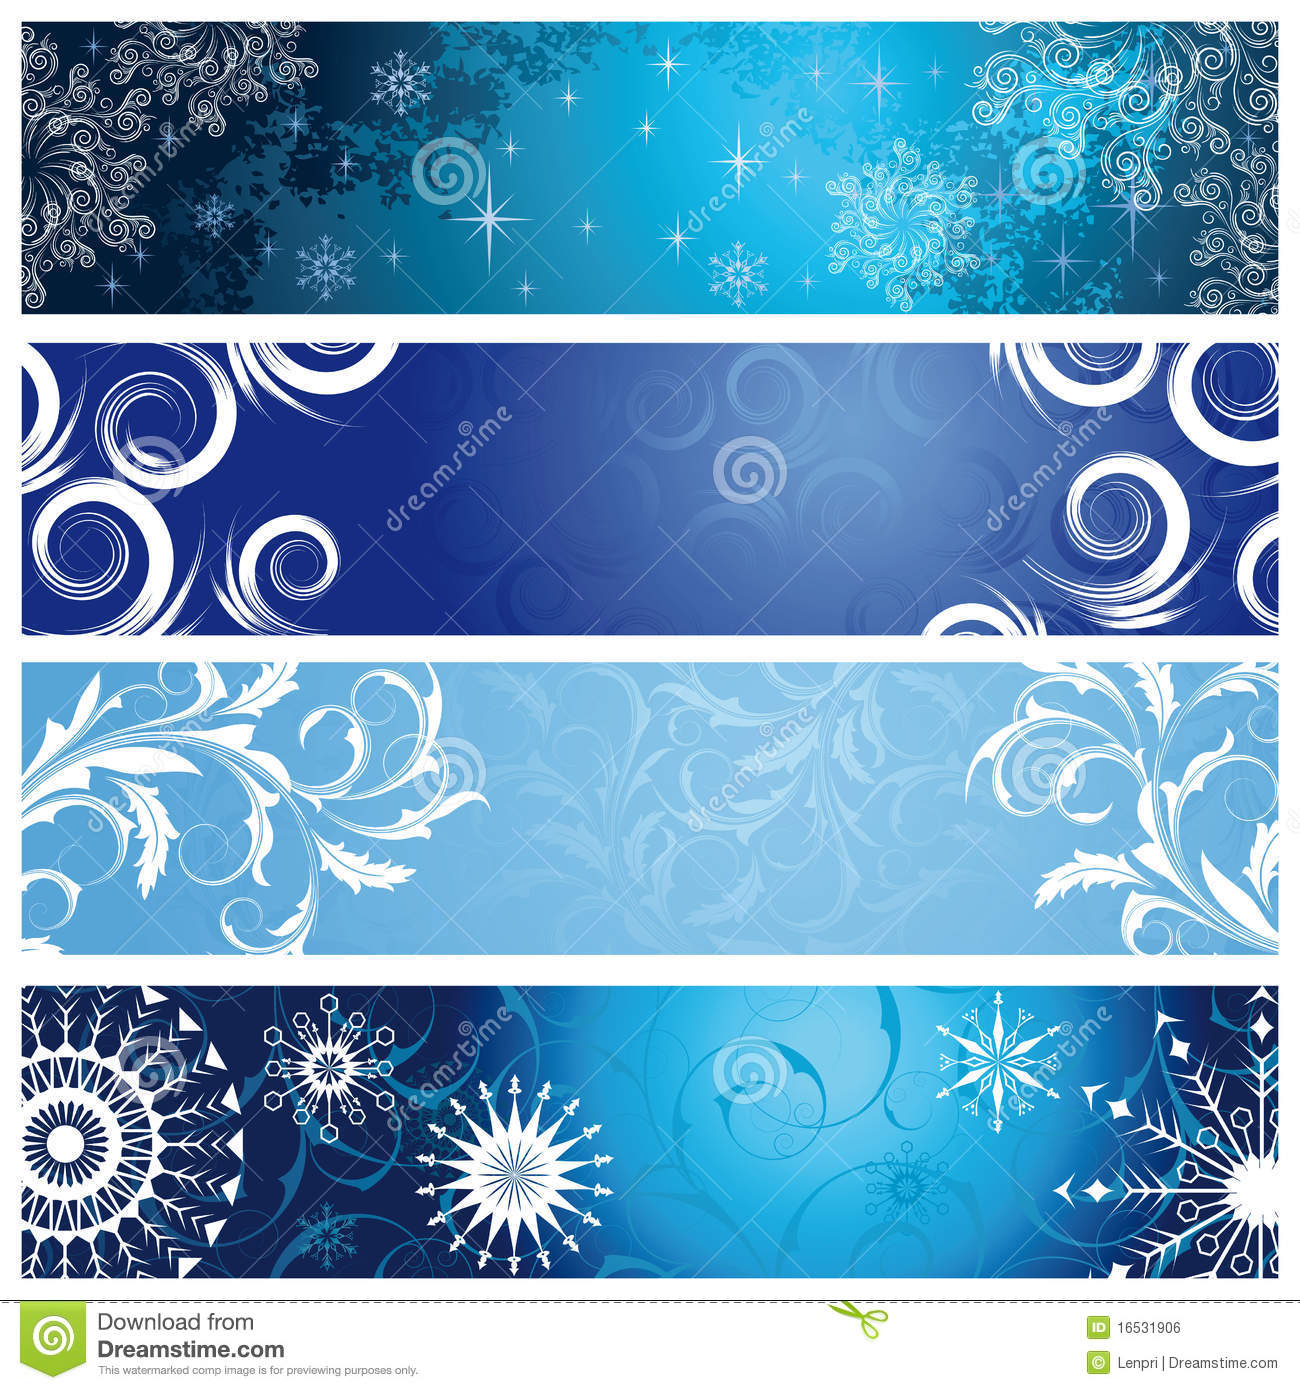 Free Falling Snow Wallpaper Download Winter Banners Royalty Free Stock Image Image 16531906